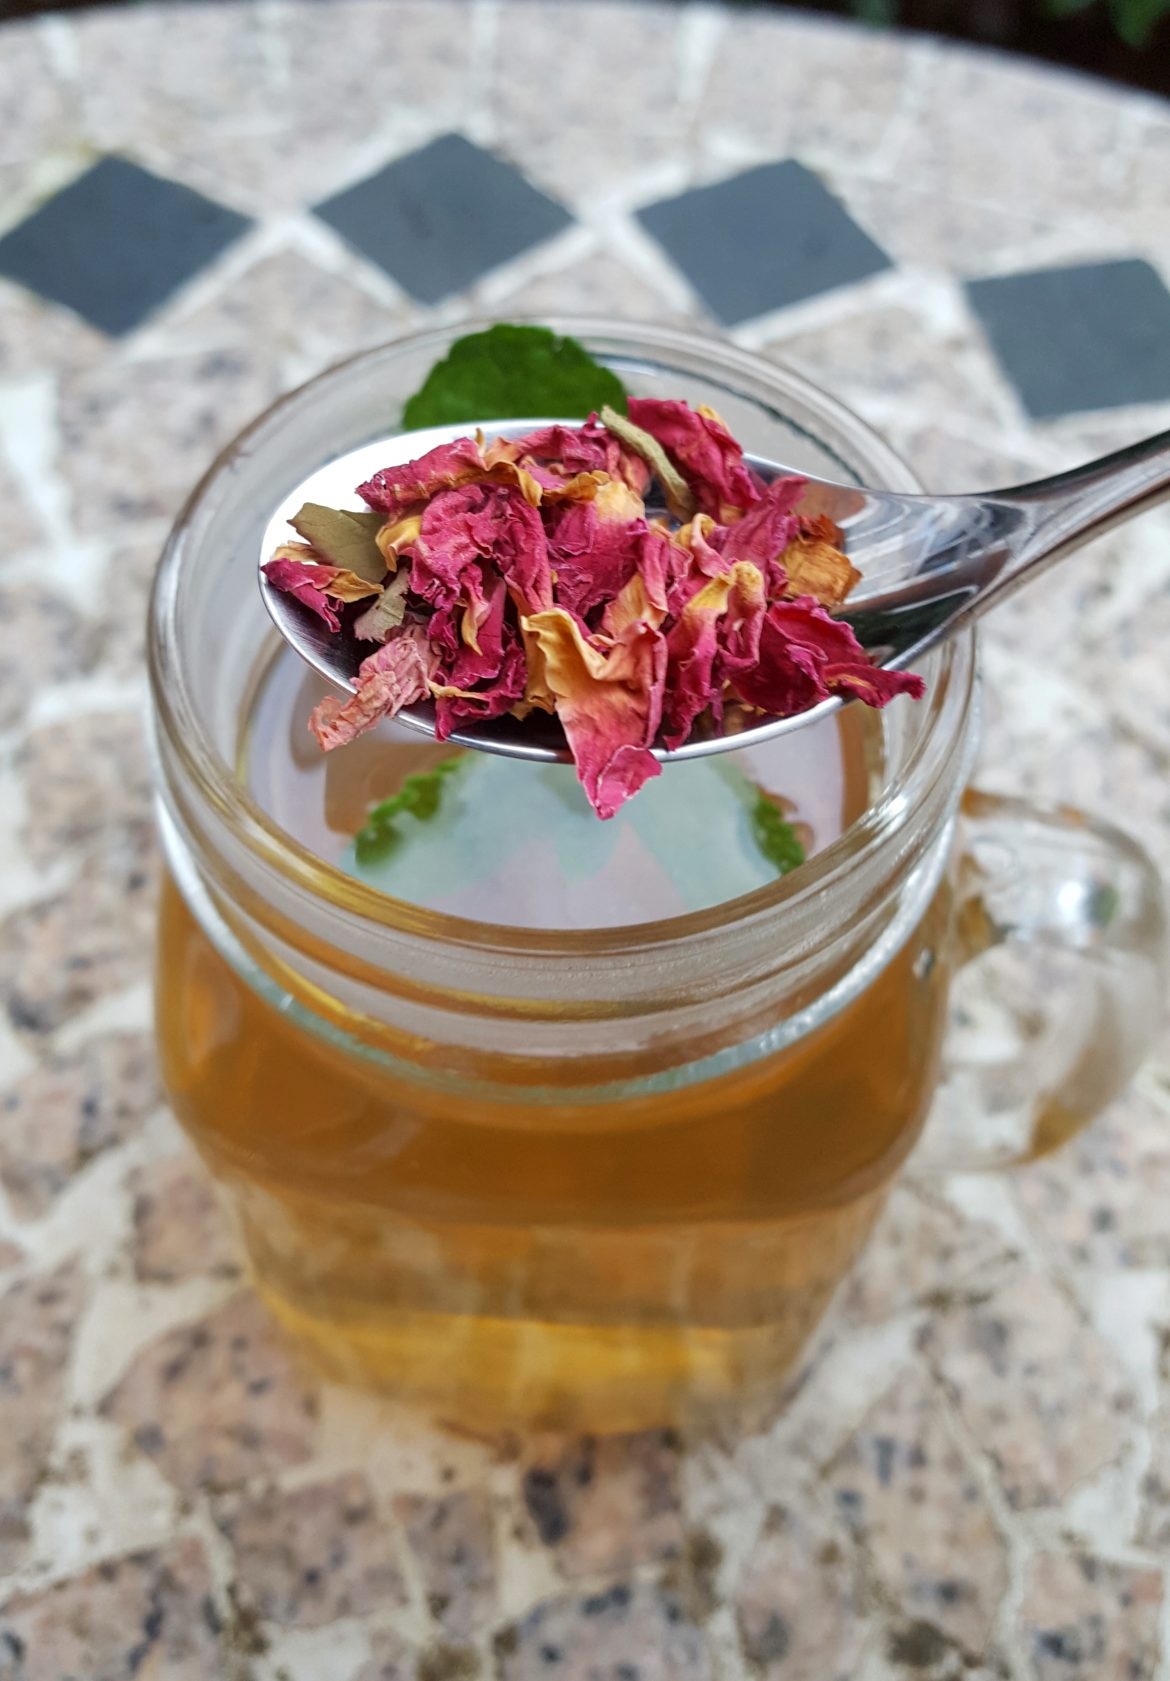 Mint and Rose Petal Infusion